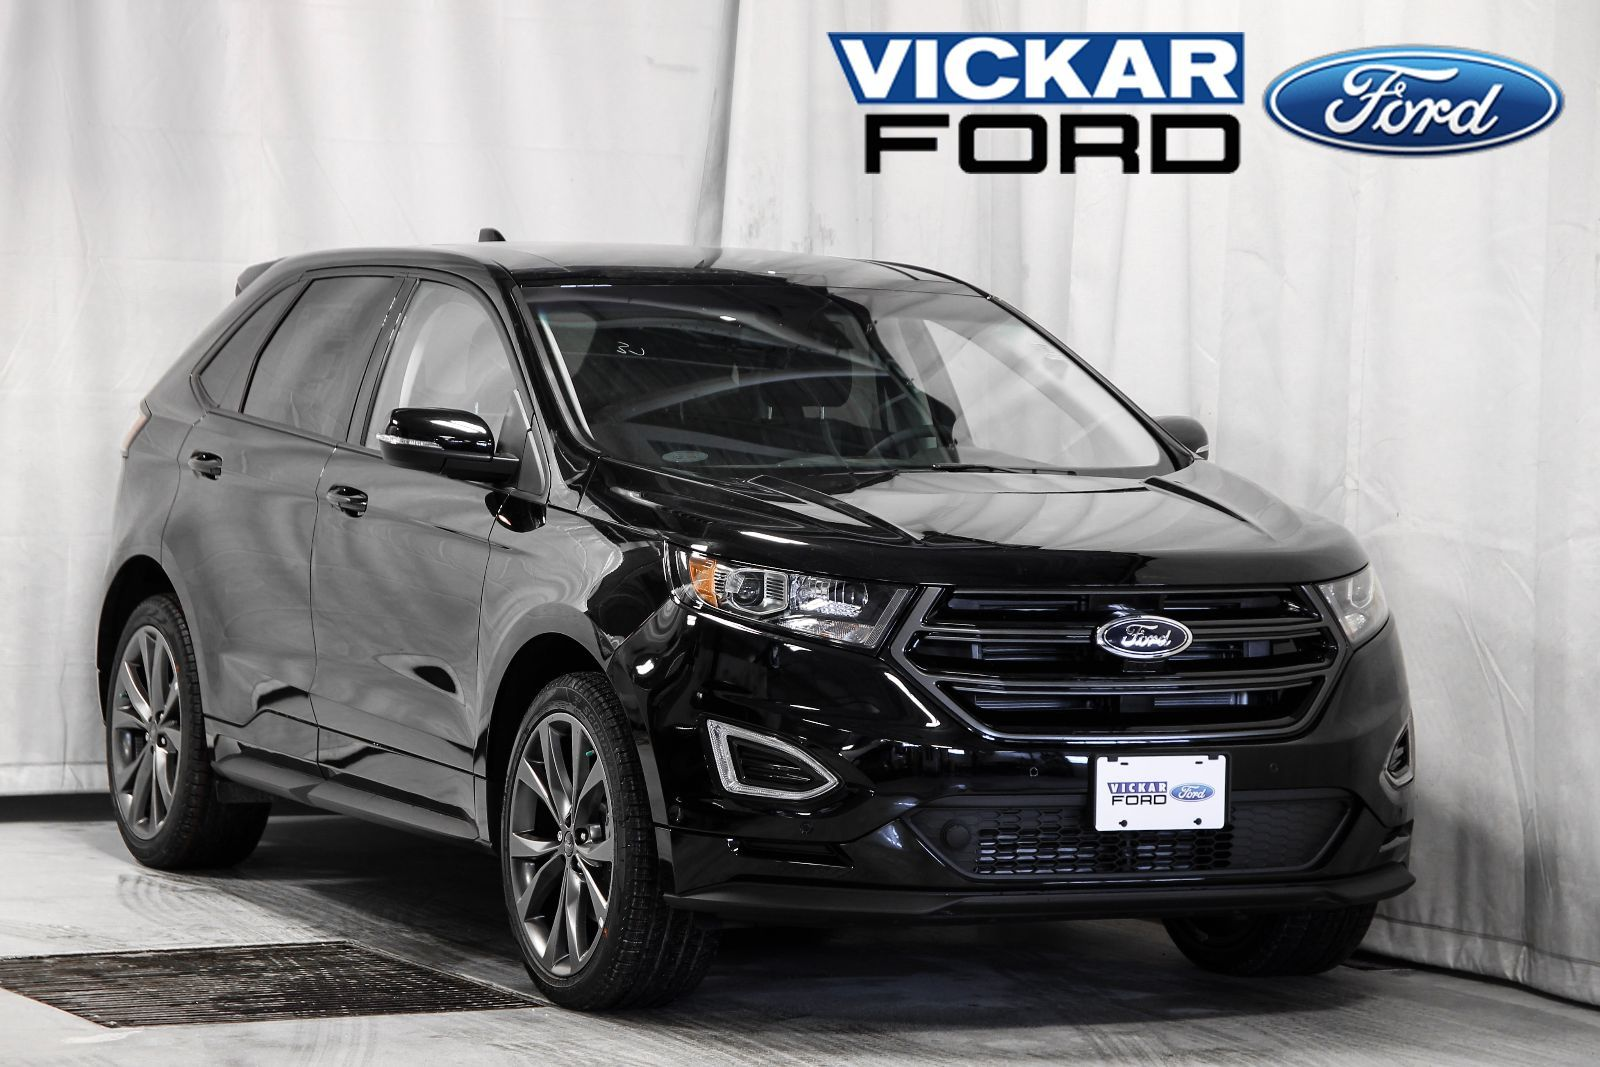 Used Tires Winnipeg >> New 2018 Ford Edge SPORT AWD Black for sale - $54339.0 ...